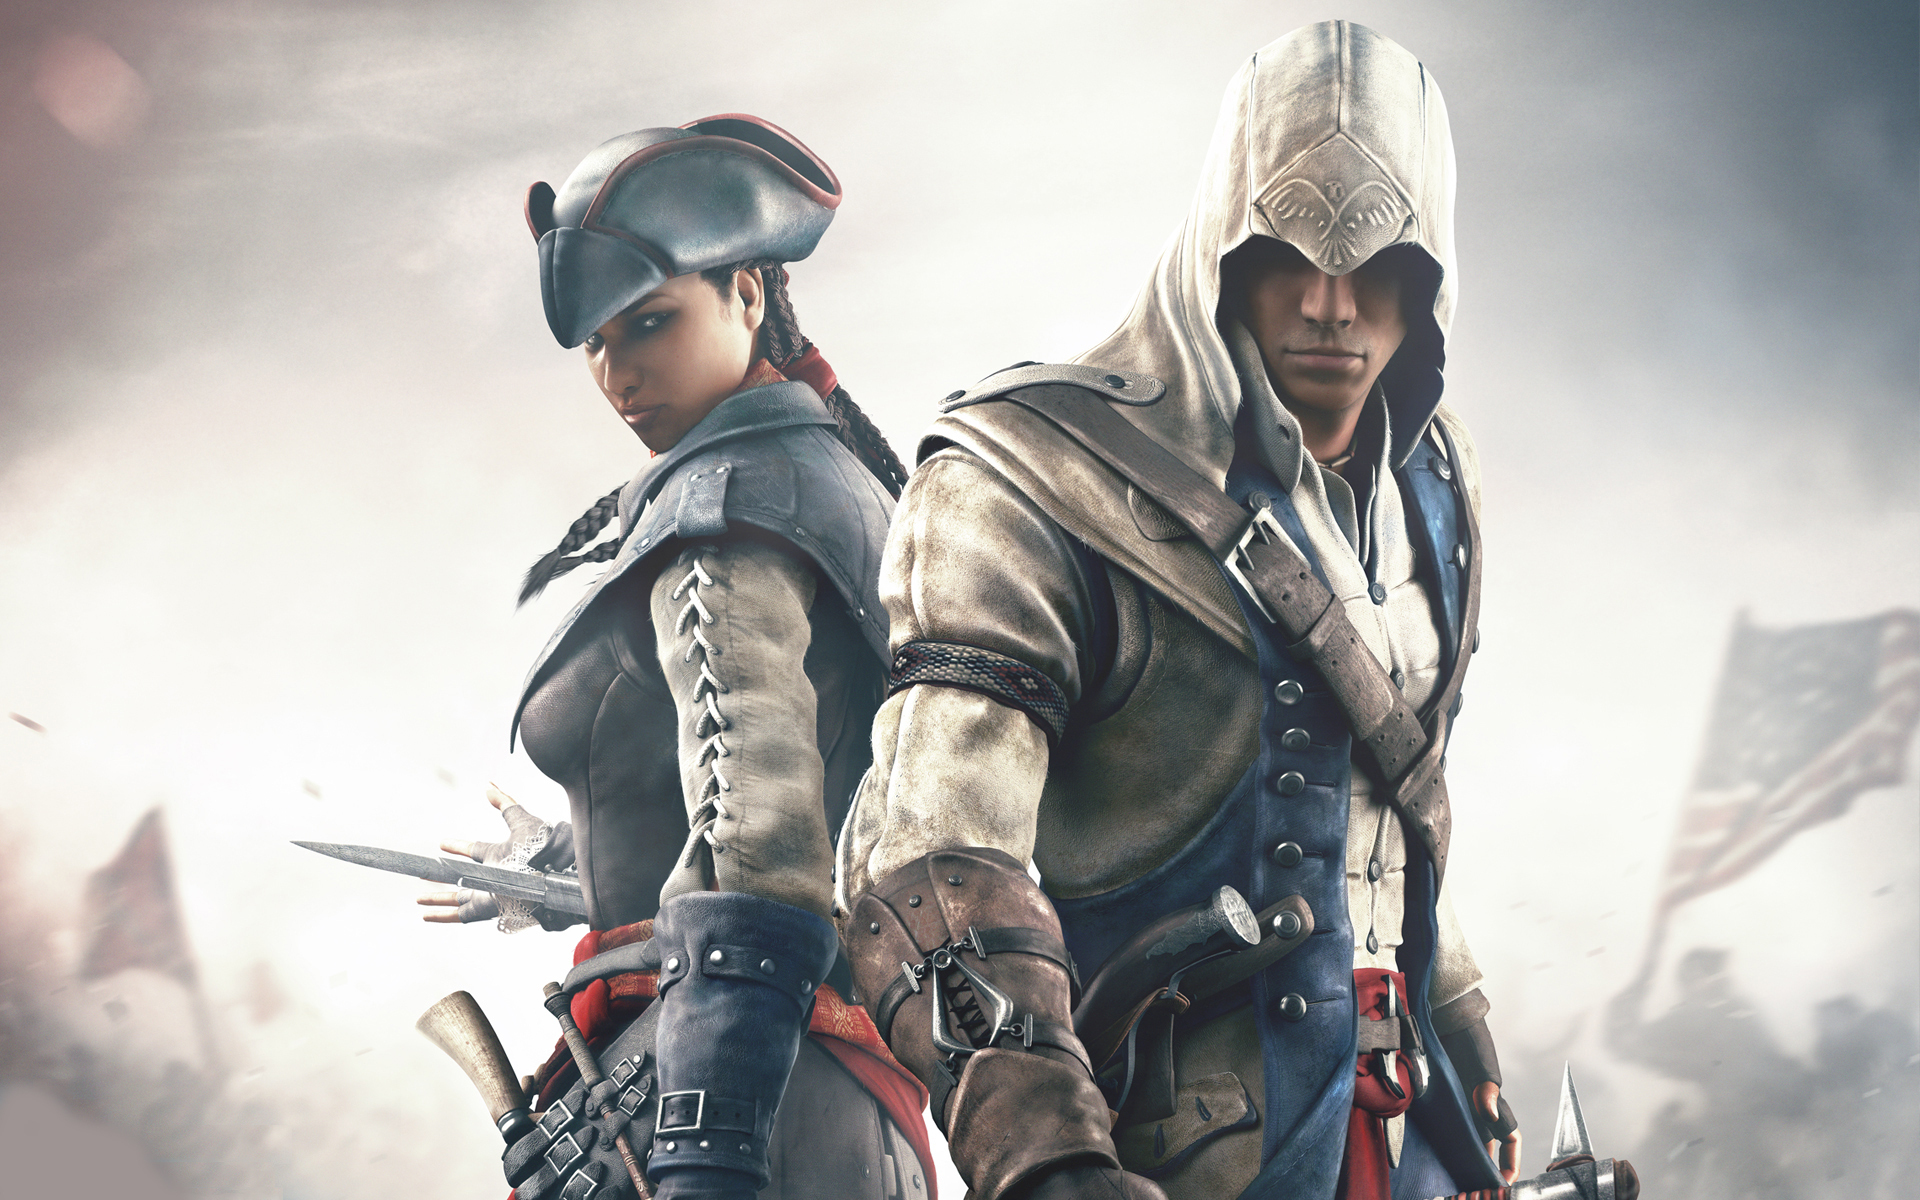 Assassins creed iii full hd wallpaper and background image video game assassins creed iii wallpaper voltagebd Gallery